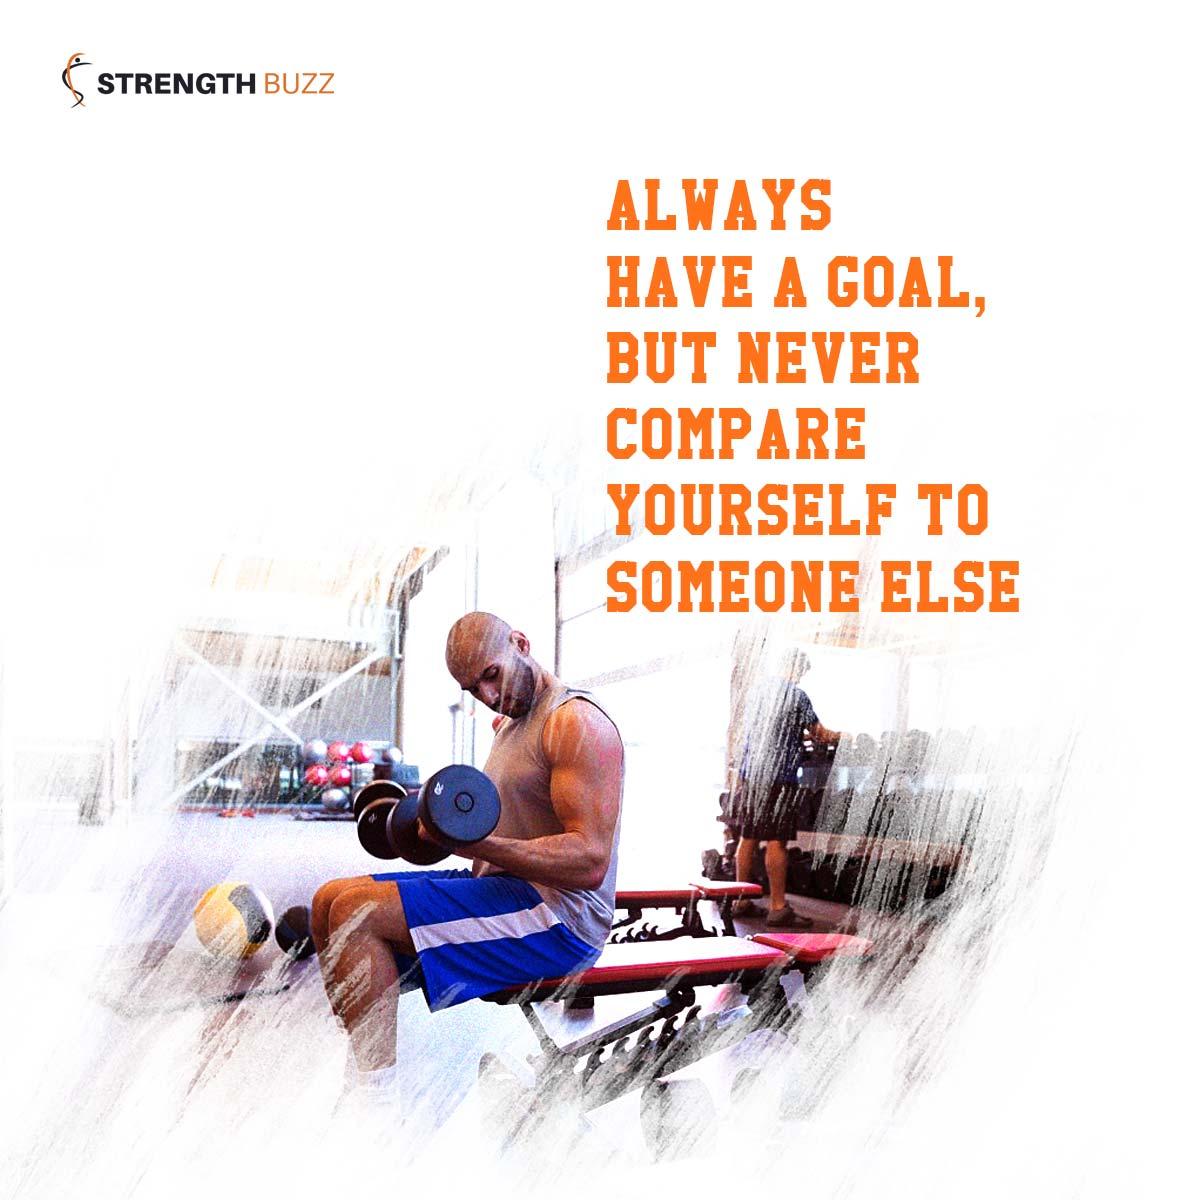 Gym Motivation Quotes - Always have a goal, but never compare yourself to someone else